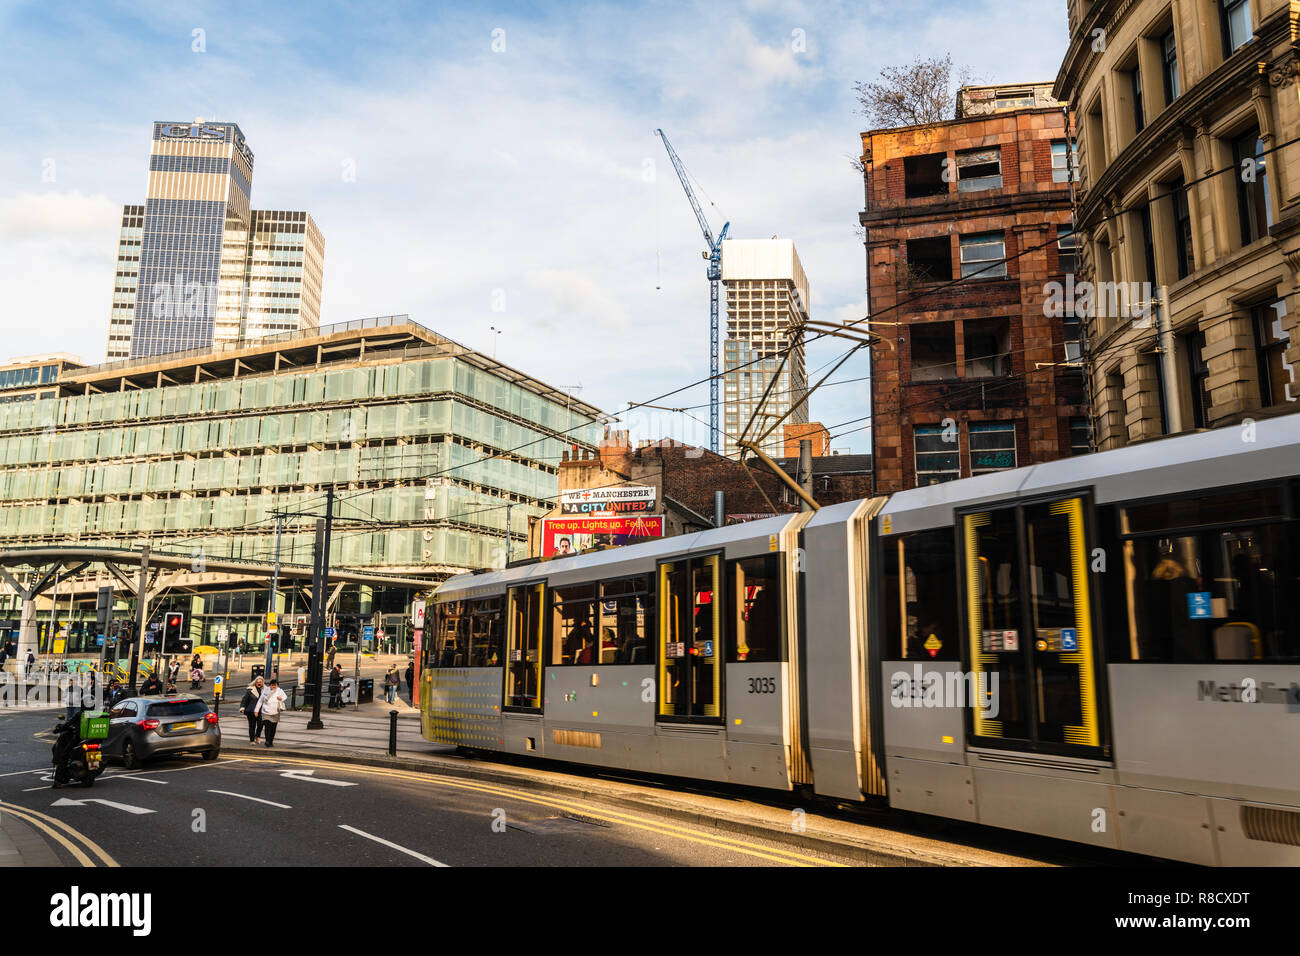 Shudehill Interchange, Co-Operative and Metrolink in Central Manchester UK - Stock Image